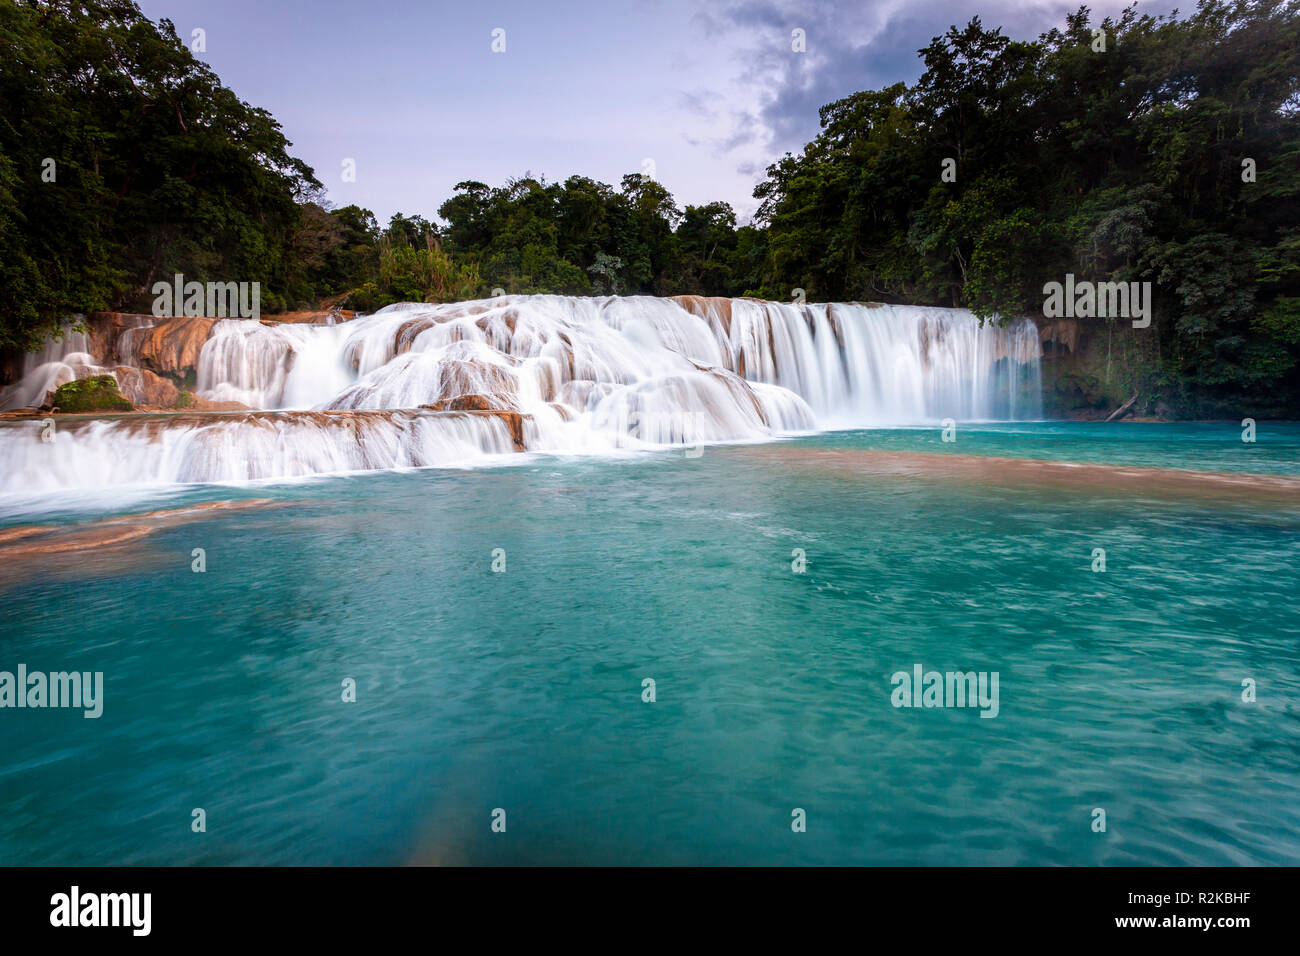 Turquoise pool of water under one of the many falls at Agua Azul, Chiapas, Mexico. - Stock Image